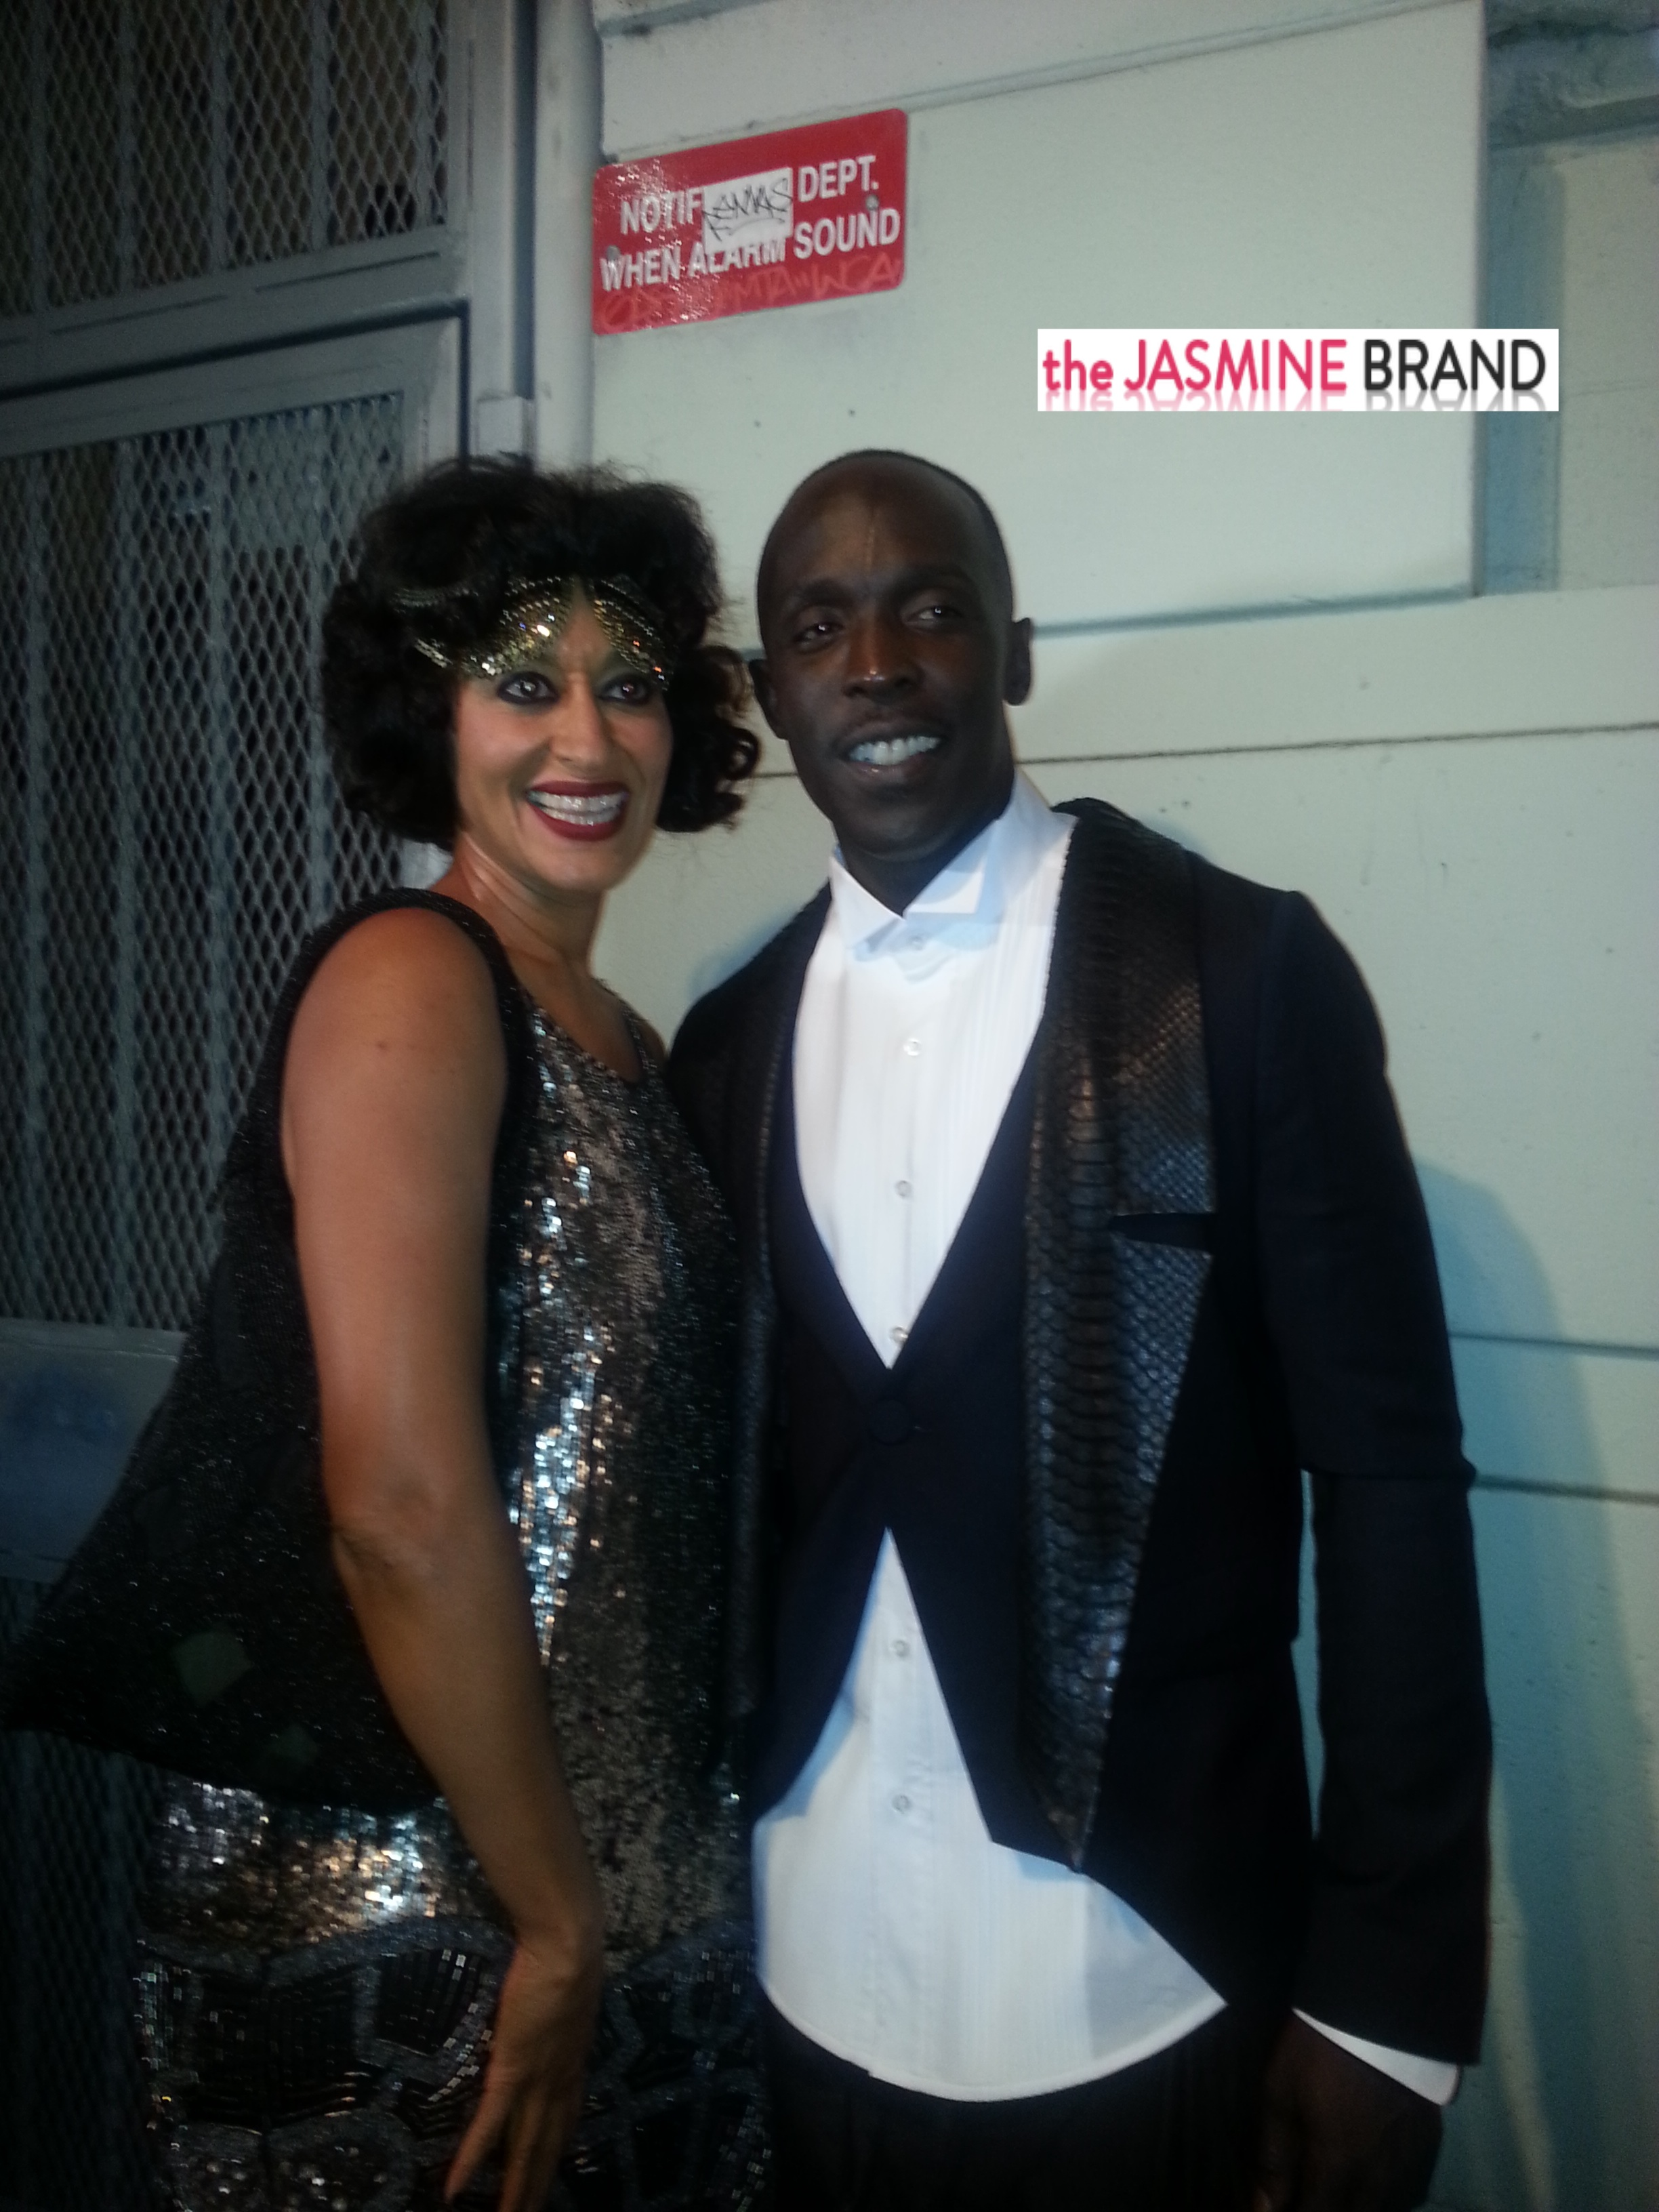 tracee ellis ross-michael k williams-boardwalk empire los angeles-the jasmine brand